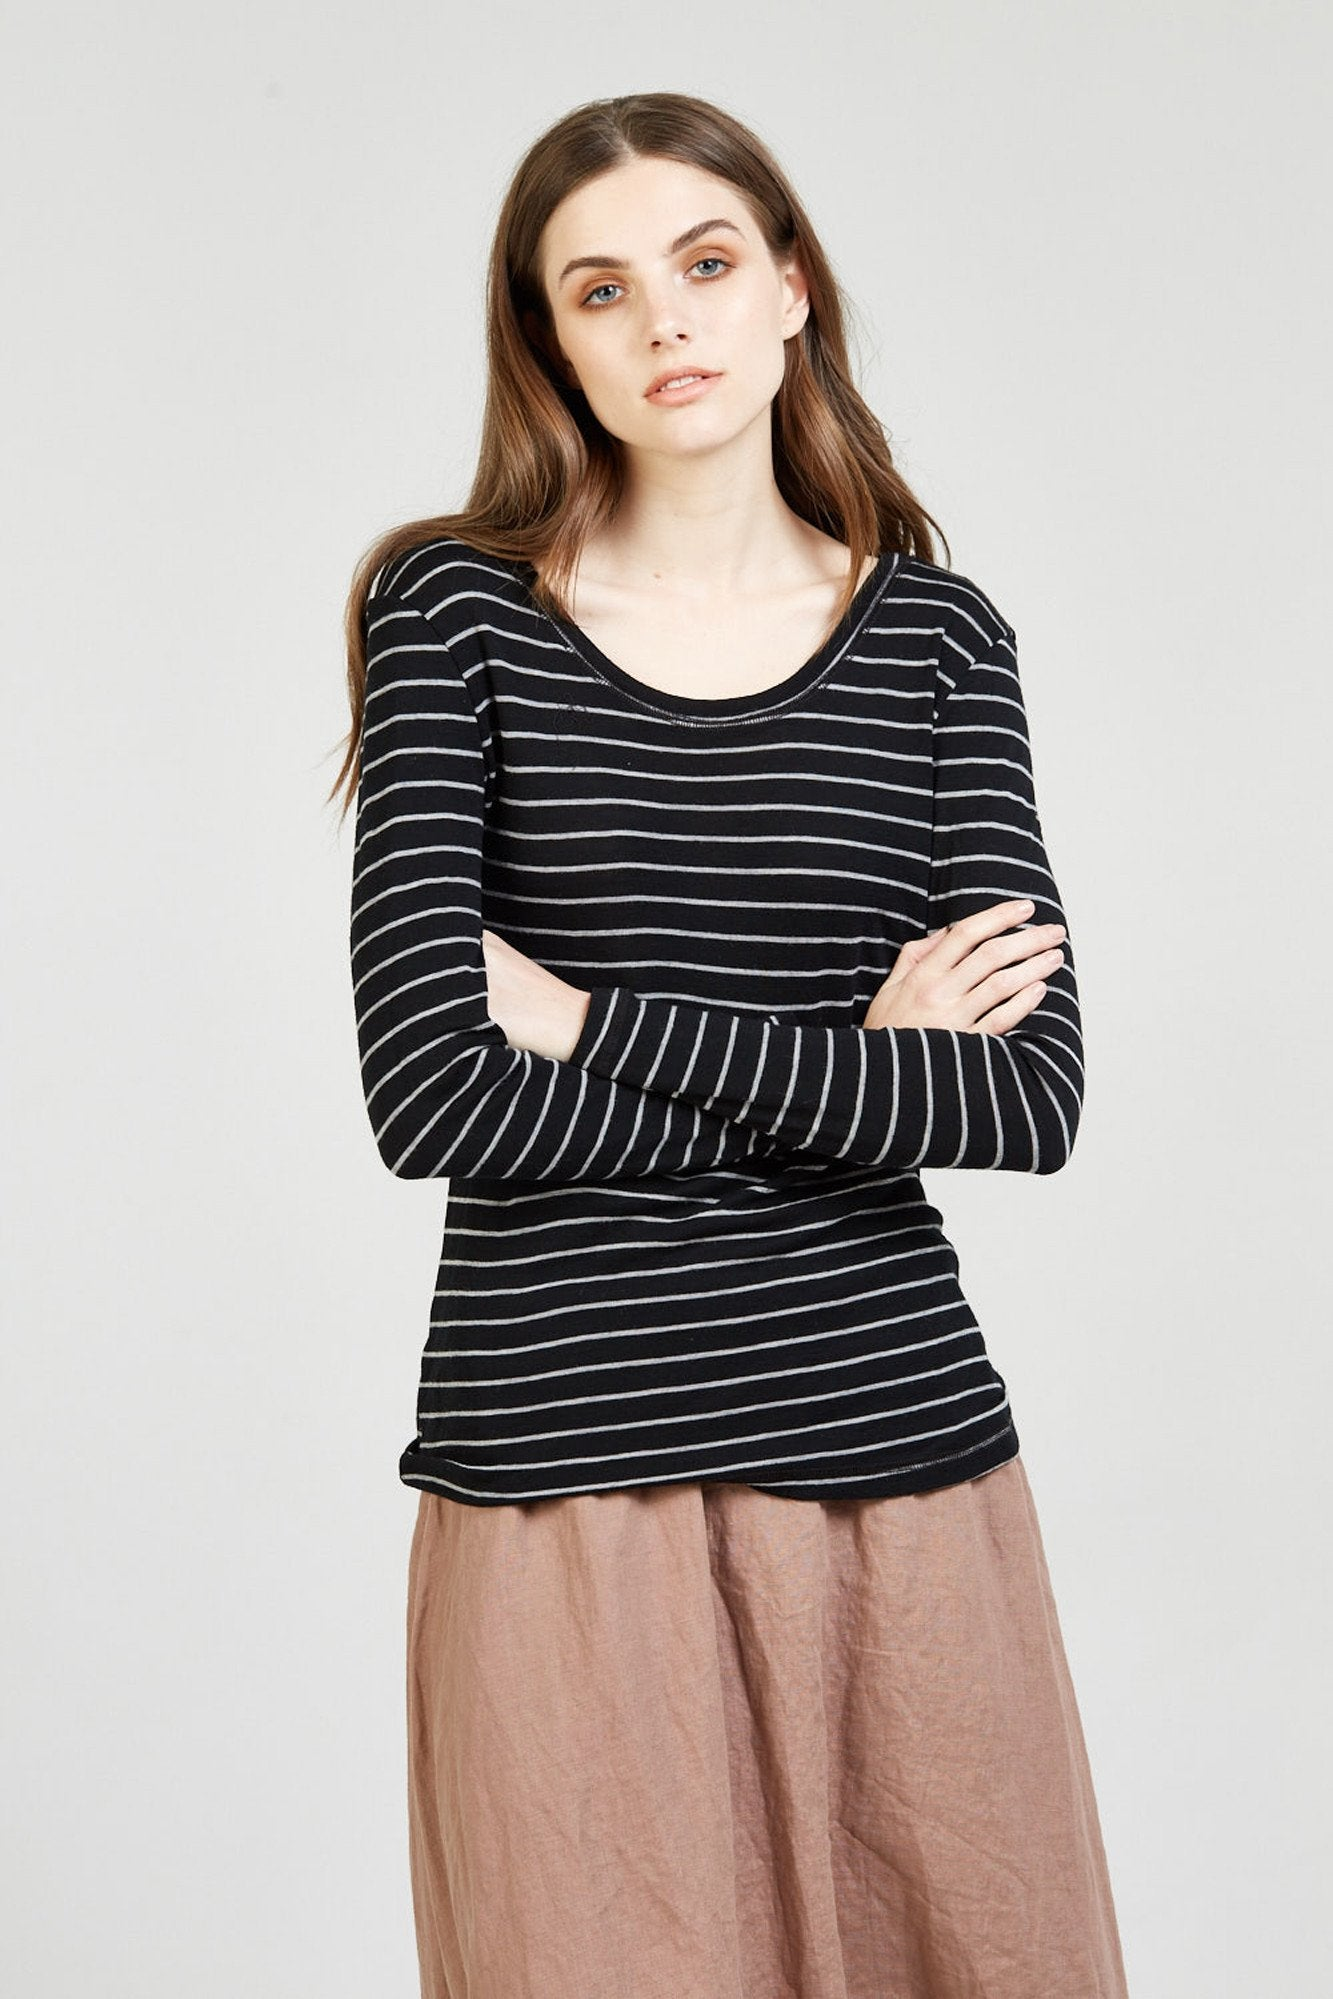 CAND CREW NECK - CHARCOAL STRIPE